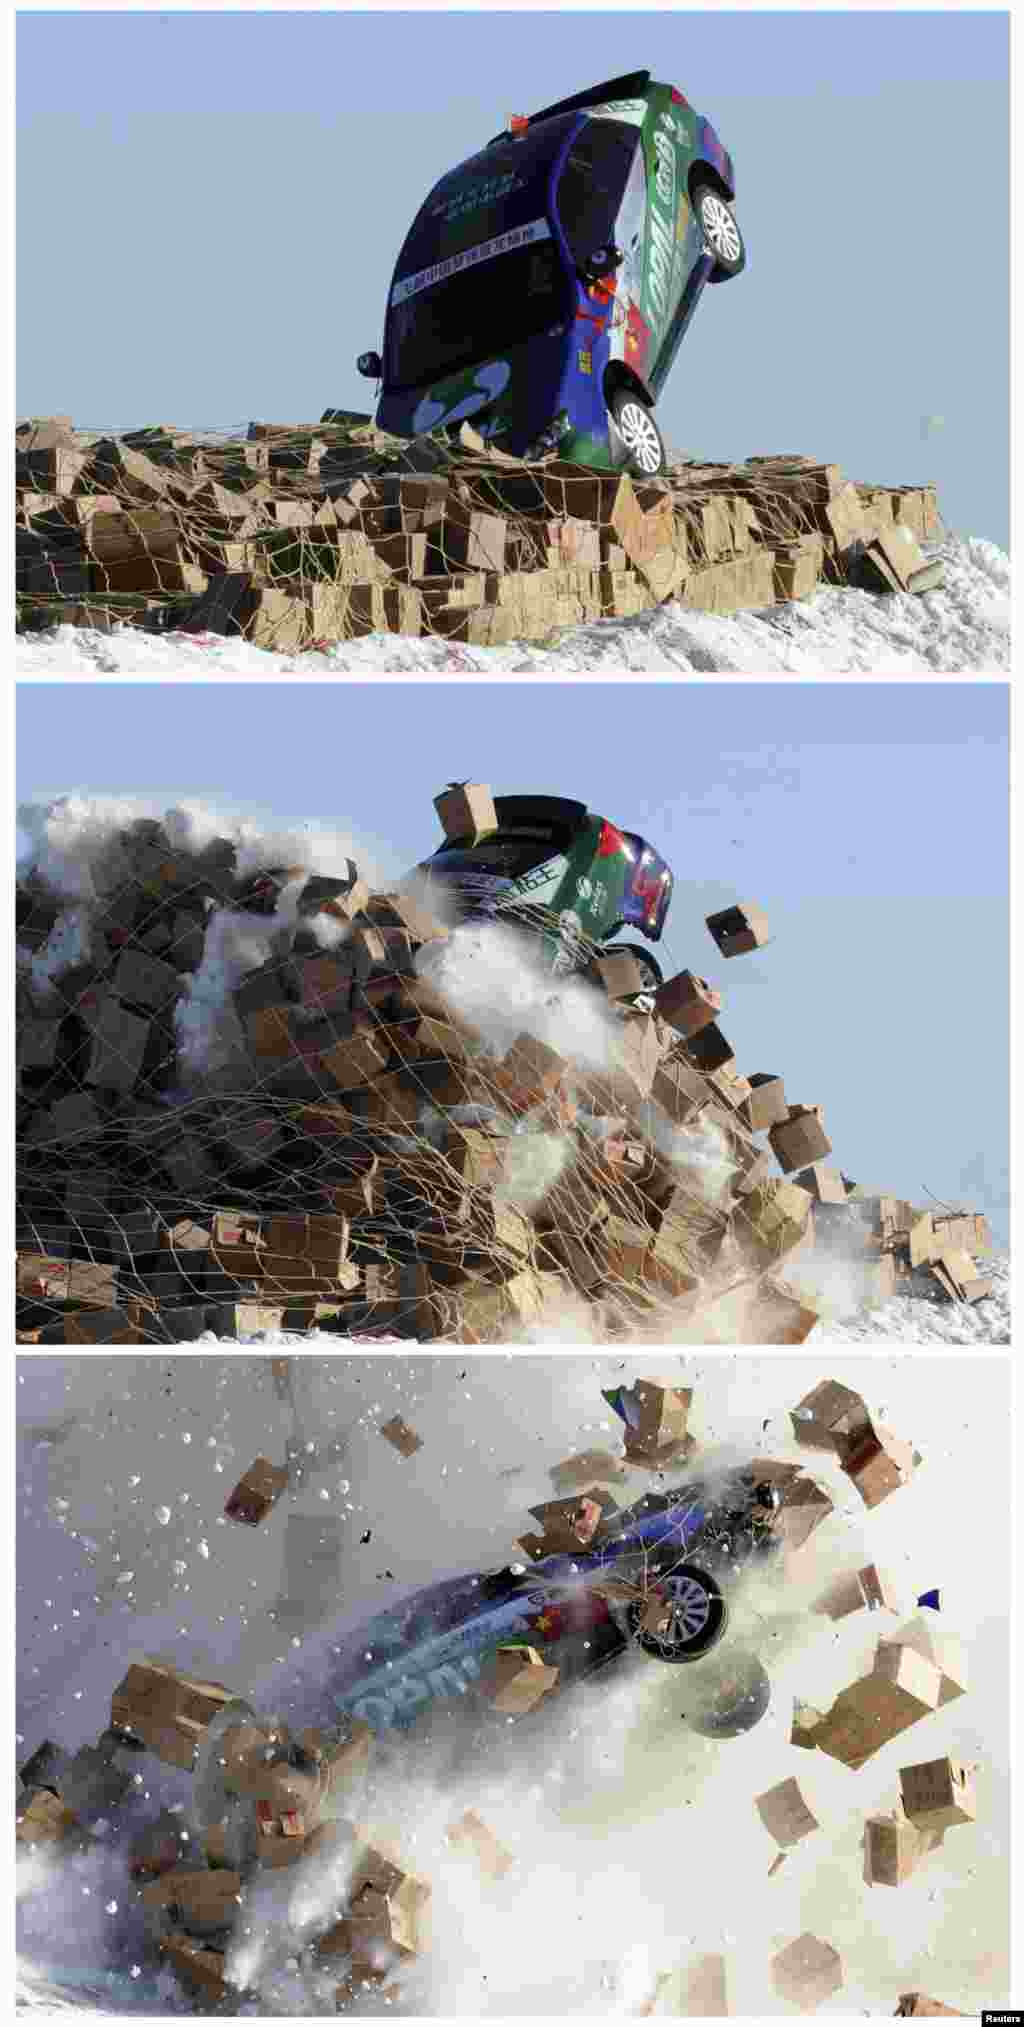 A combination picture shows a car, driven by stunt driver Xie Yujun, hitting carton boxes upon landing after it leaped over a section of the frozen Songhua River in Heihe, Heilongjiang province, near the border of China and Russia.Xie successfully leaped over an approximately 40 m (131 ft) wide section of the Songhua River where temperatures hit - 40°C (- 40°F), local media reported.